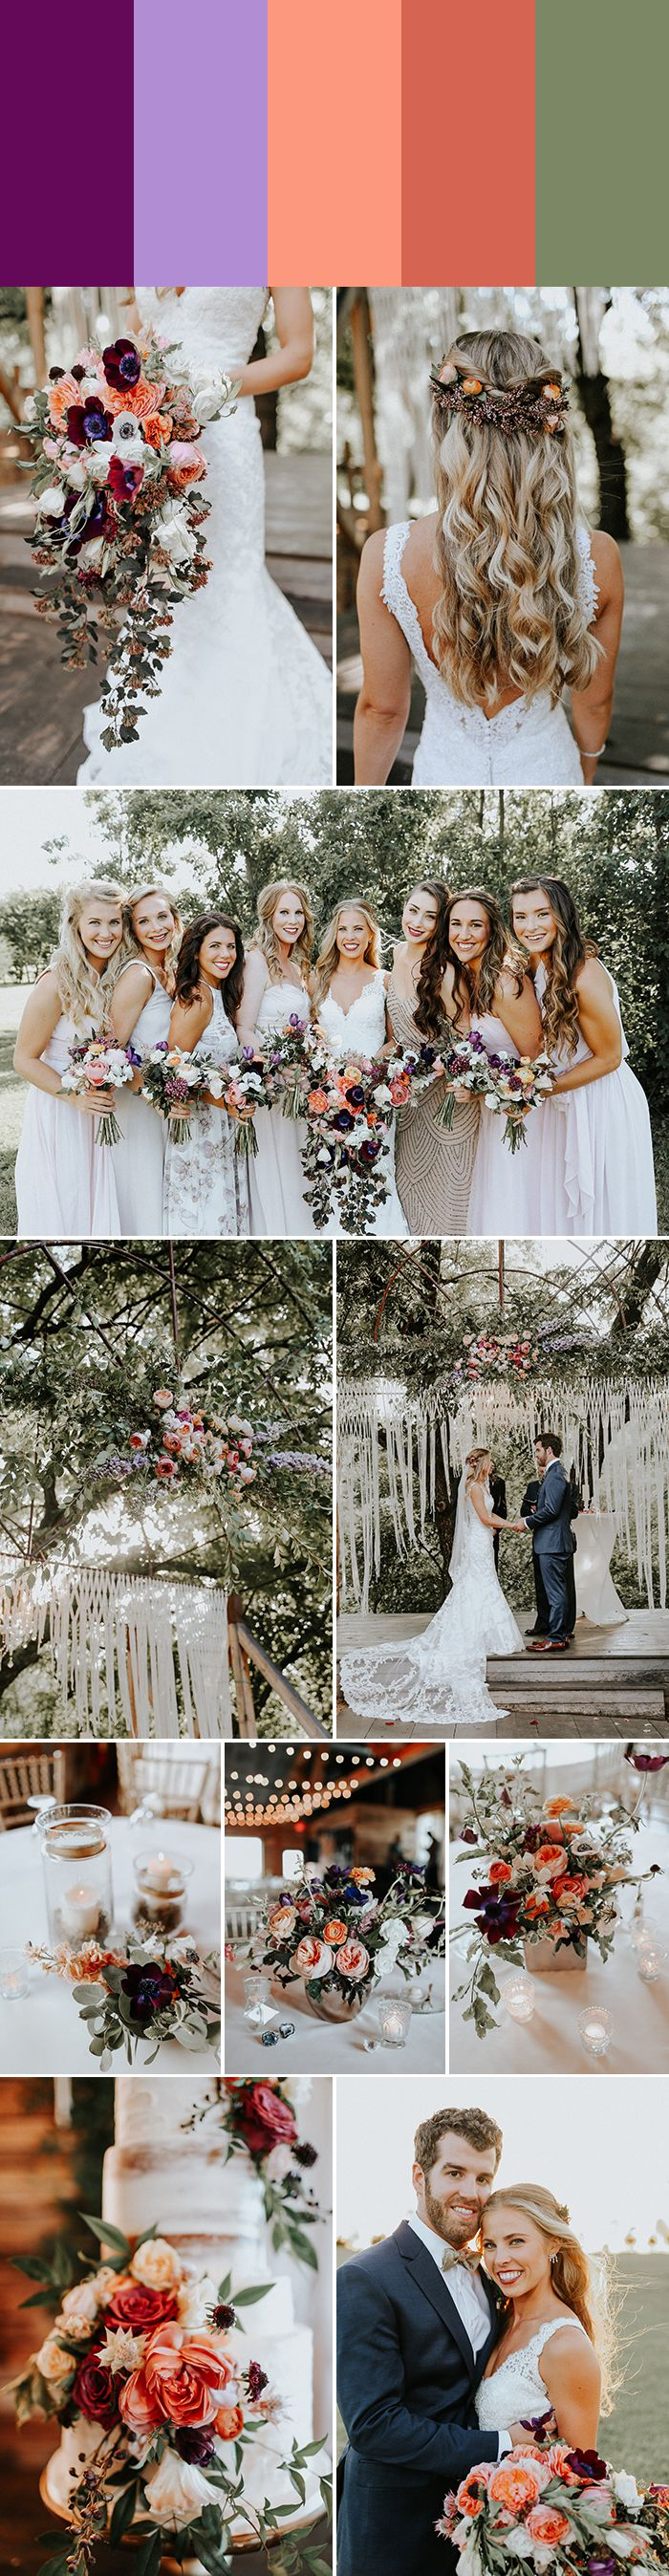 These violet wedding color palettes inspired by the Pantone 2018 Color of the Year are as romantic and stylish as they are on-trend!